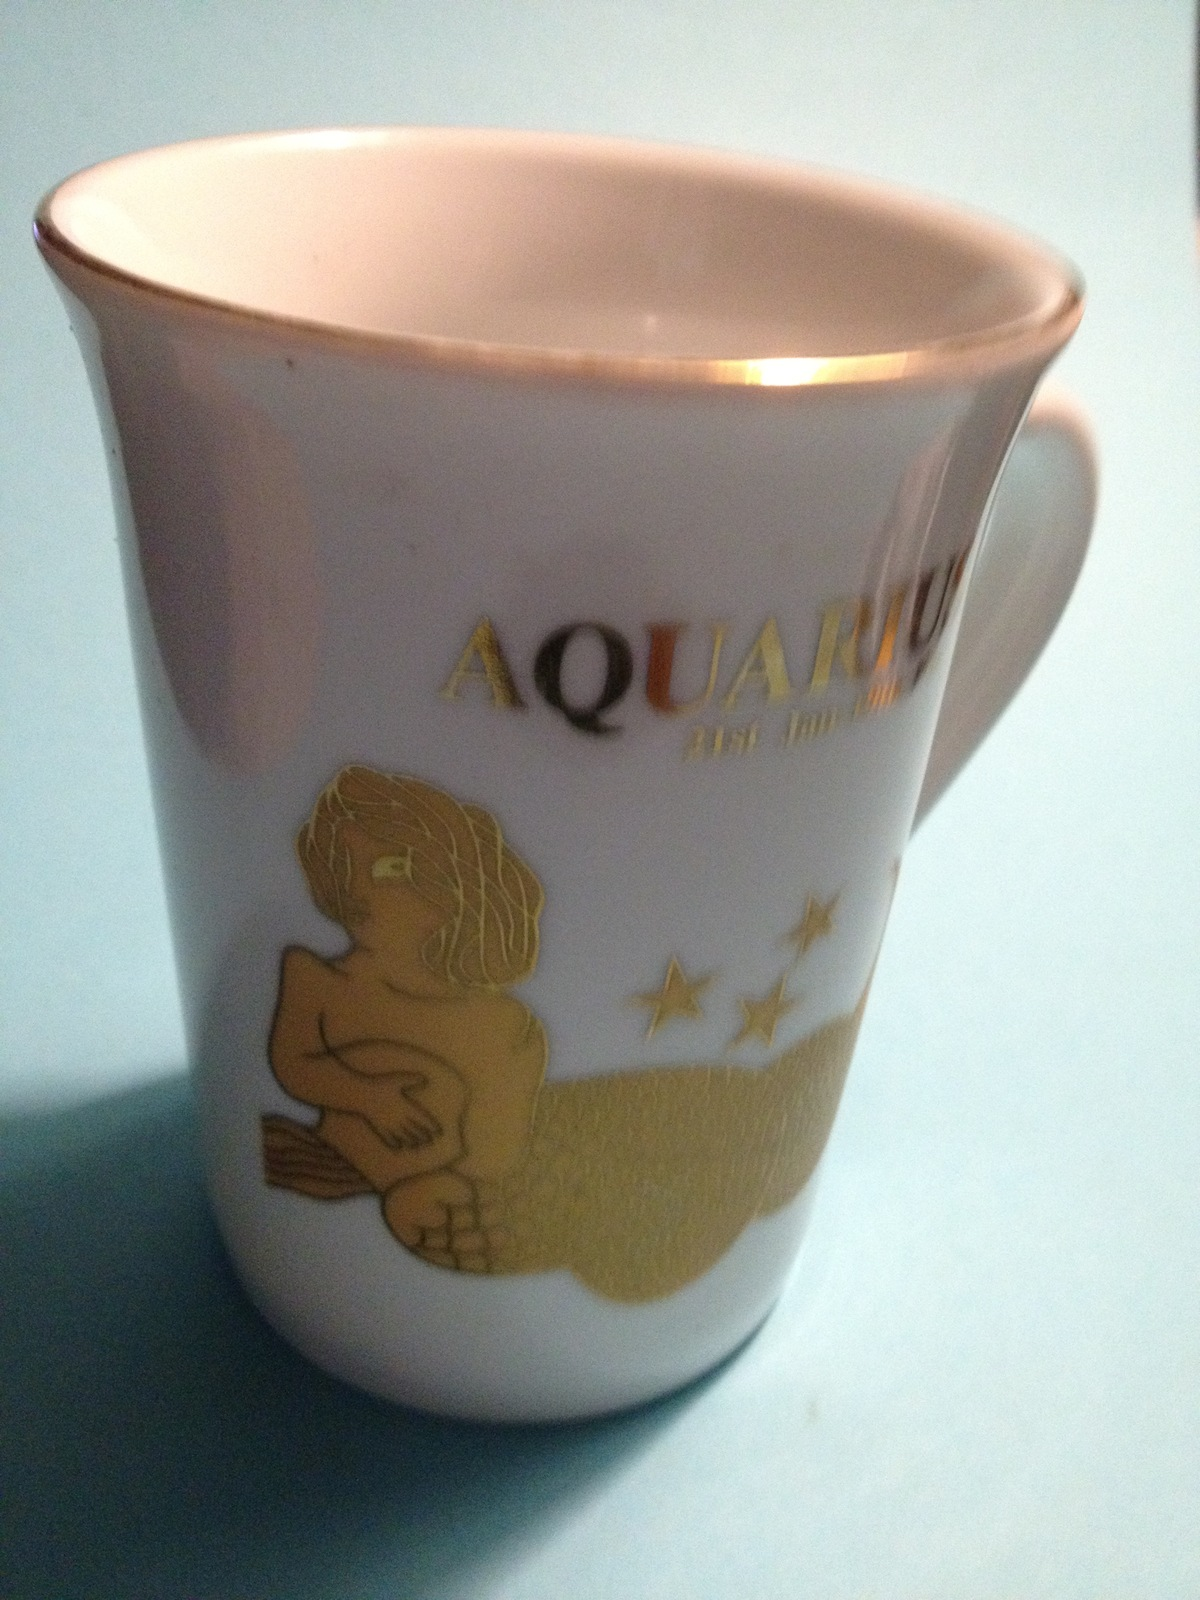 AQUARIUS Zodiac Vintage 24K Gilt Gold Porcelain MUG - Jan 21 to Feb 19